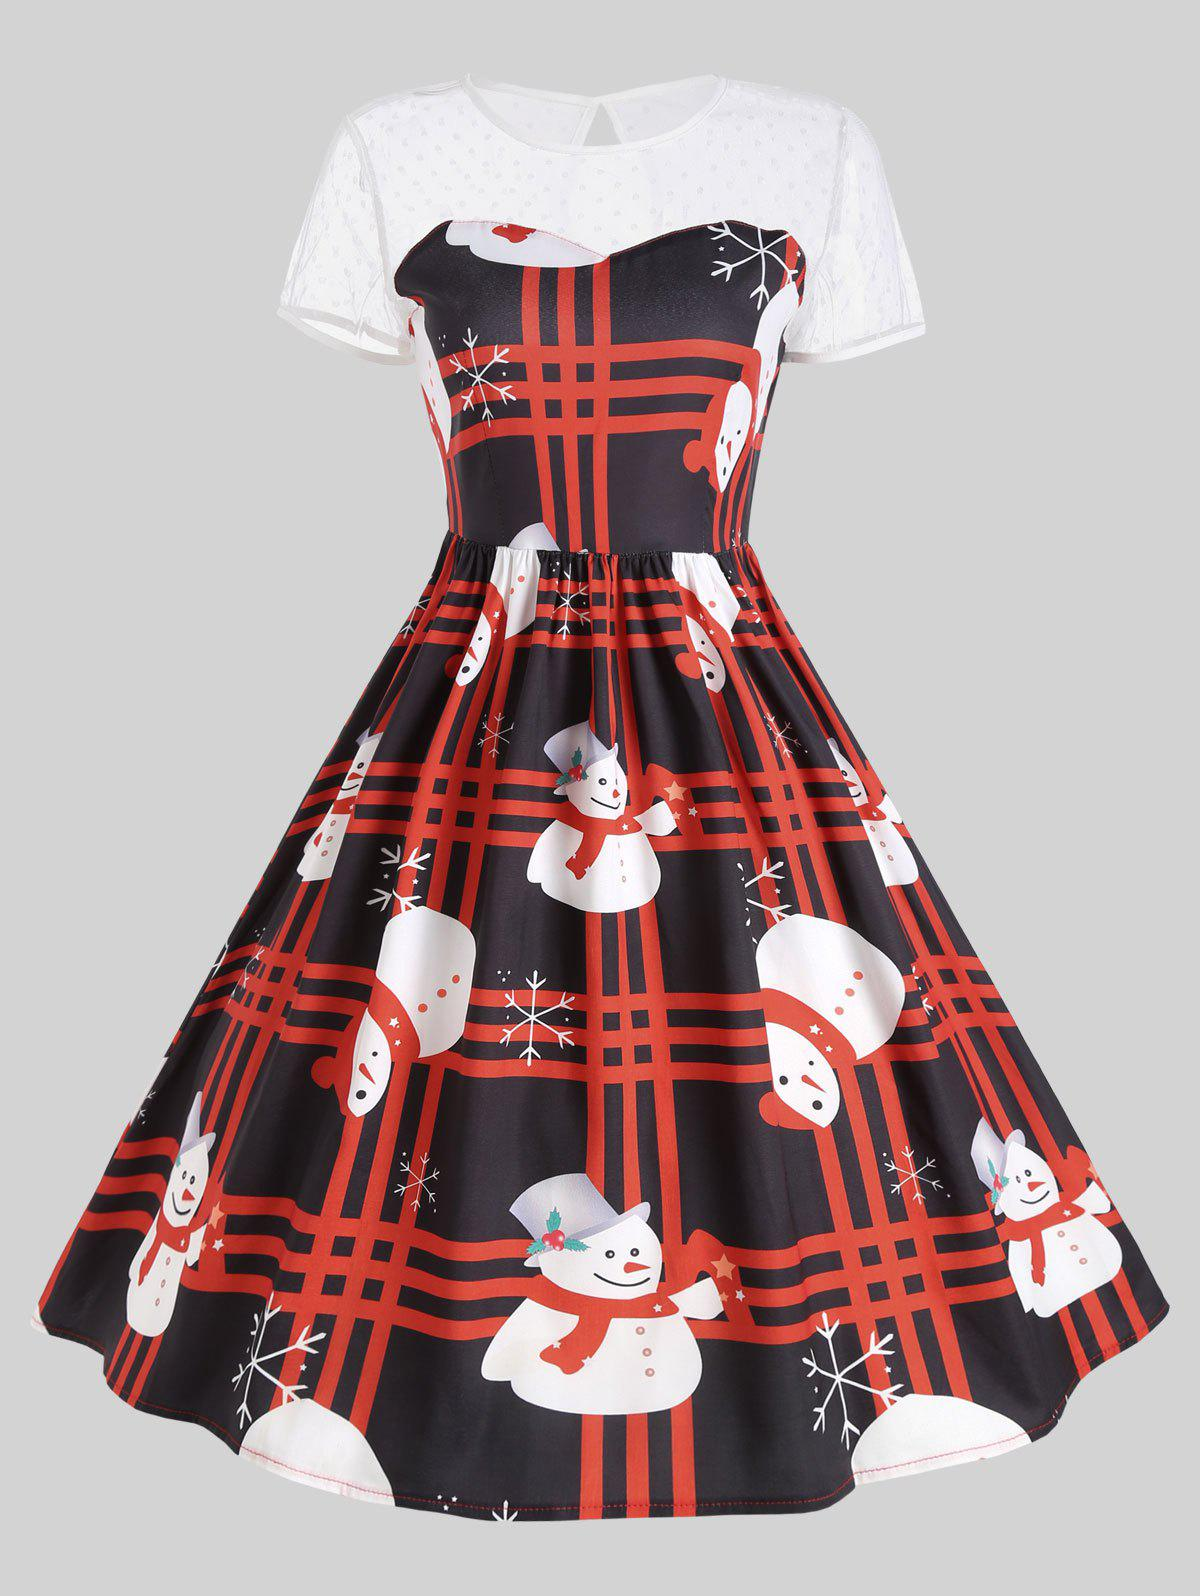 Mesh Panel Christmas Snowman Plaid Party DressWOMEN<br><br>Size: M; Color: RED; Style: Cute; Material: Cotton Blend,Polyester; Silhouette: Ball Gown; Dresses Length: Mid-Calf; Neckline: Round Collar; Sleeve Length: Short Sleeves; Embellishment: Hole,Hollow Out; Pattern Type: Print; With Belt: No; Season: Fall; Weight: 0.2400kg; Package Contents: 1 x Dress;